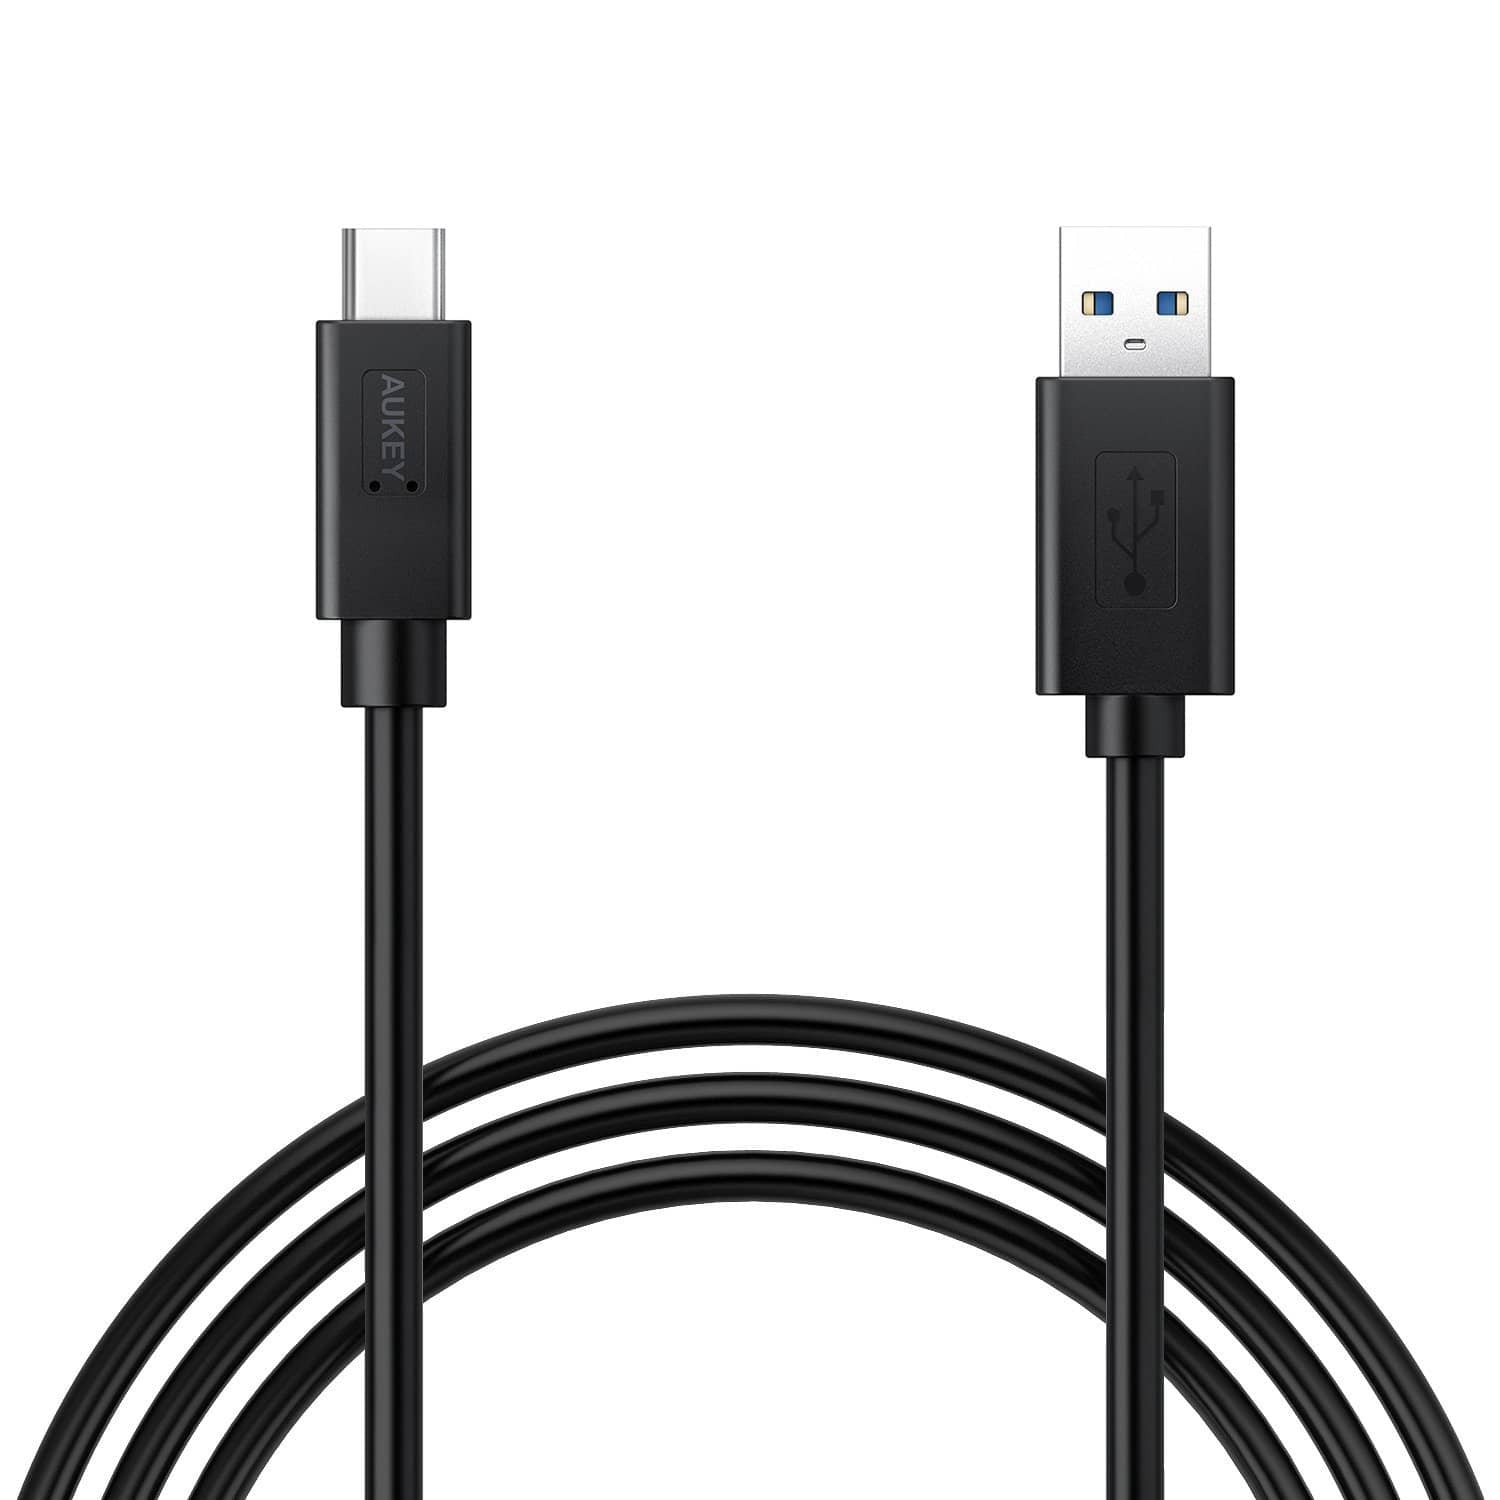 CB-C10 Super Speed USB 3.0 to USB-C 1 Meter Cable